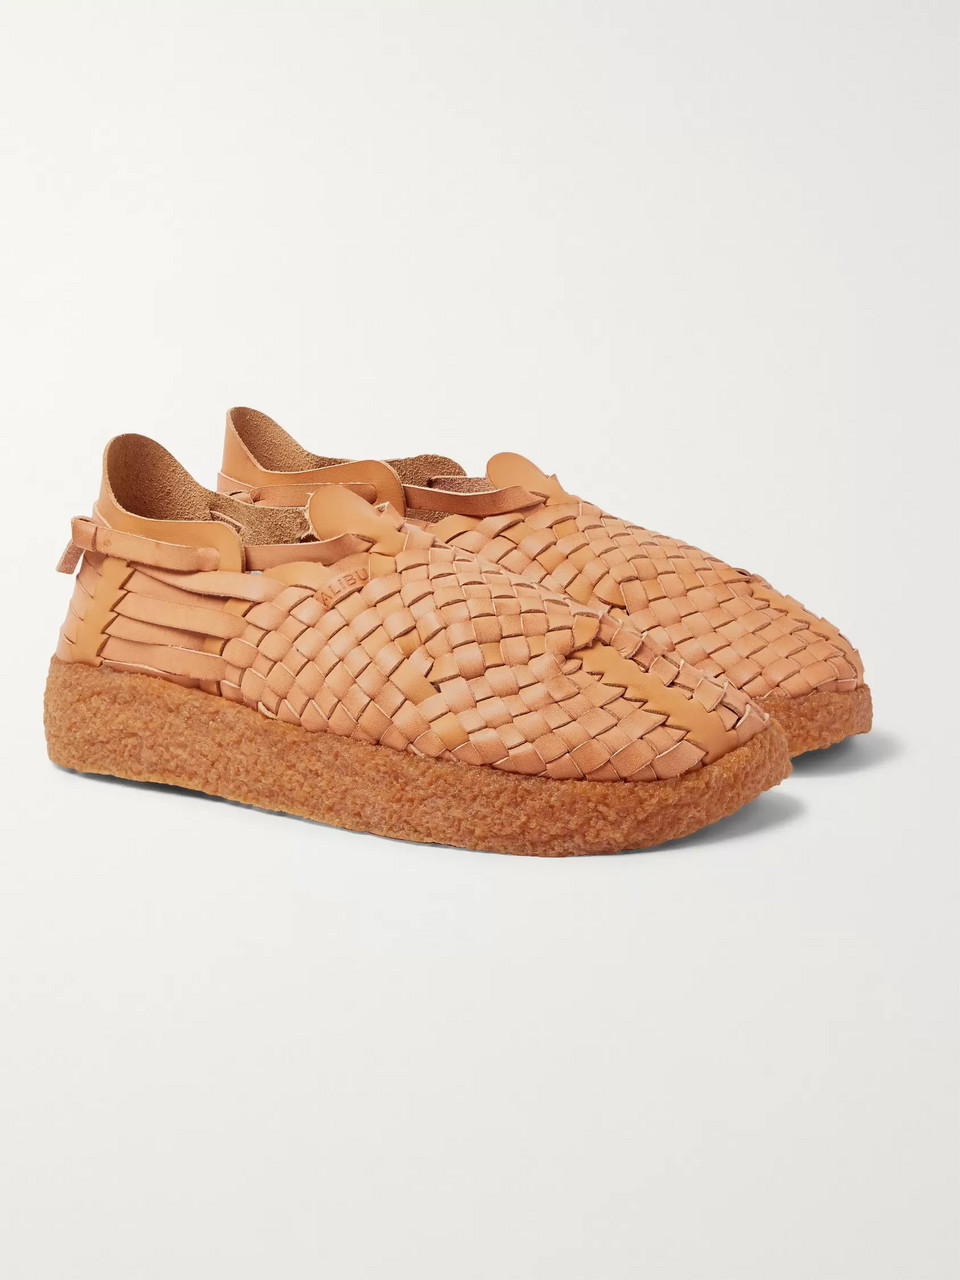 Malibu Latigo Woven Faux Leather Sandals